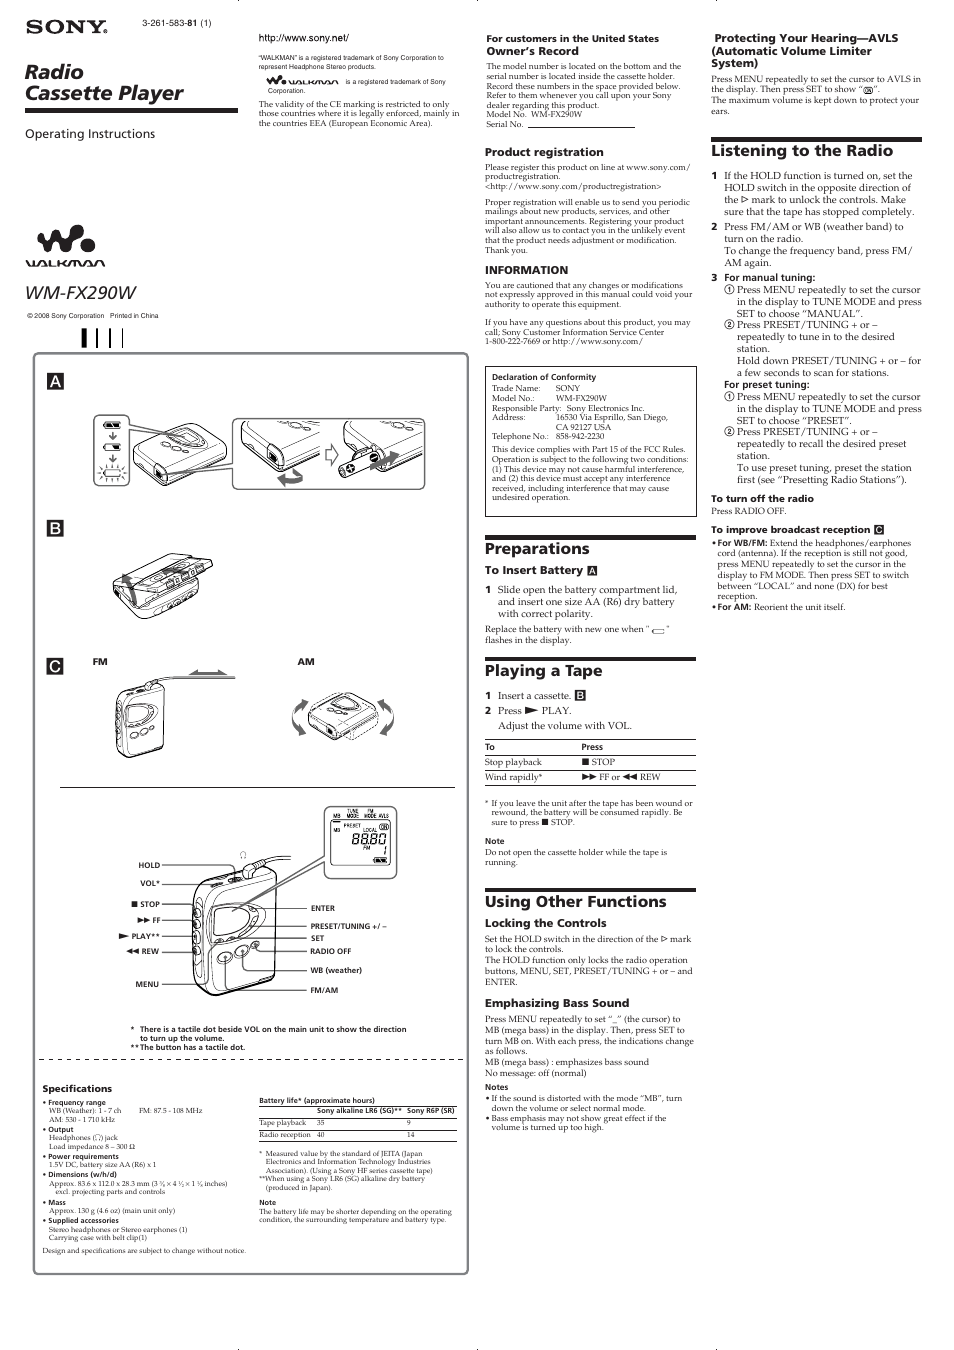 Sony Walkman Wireless Headphones Instructions